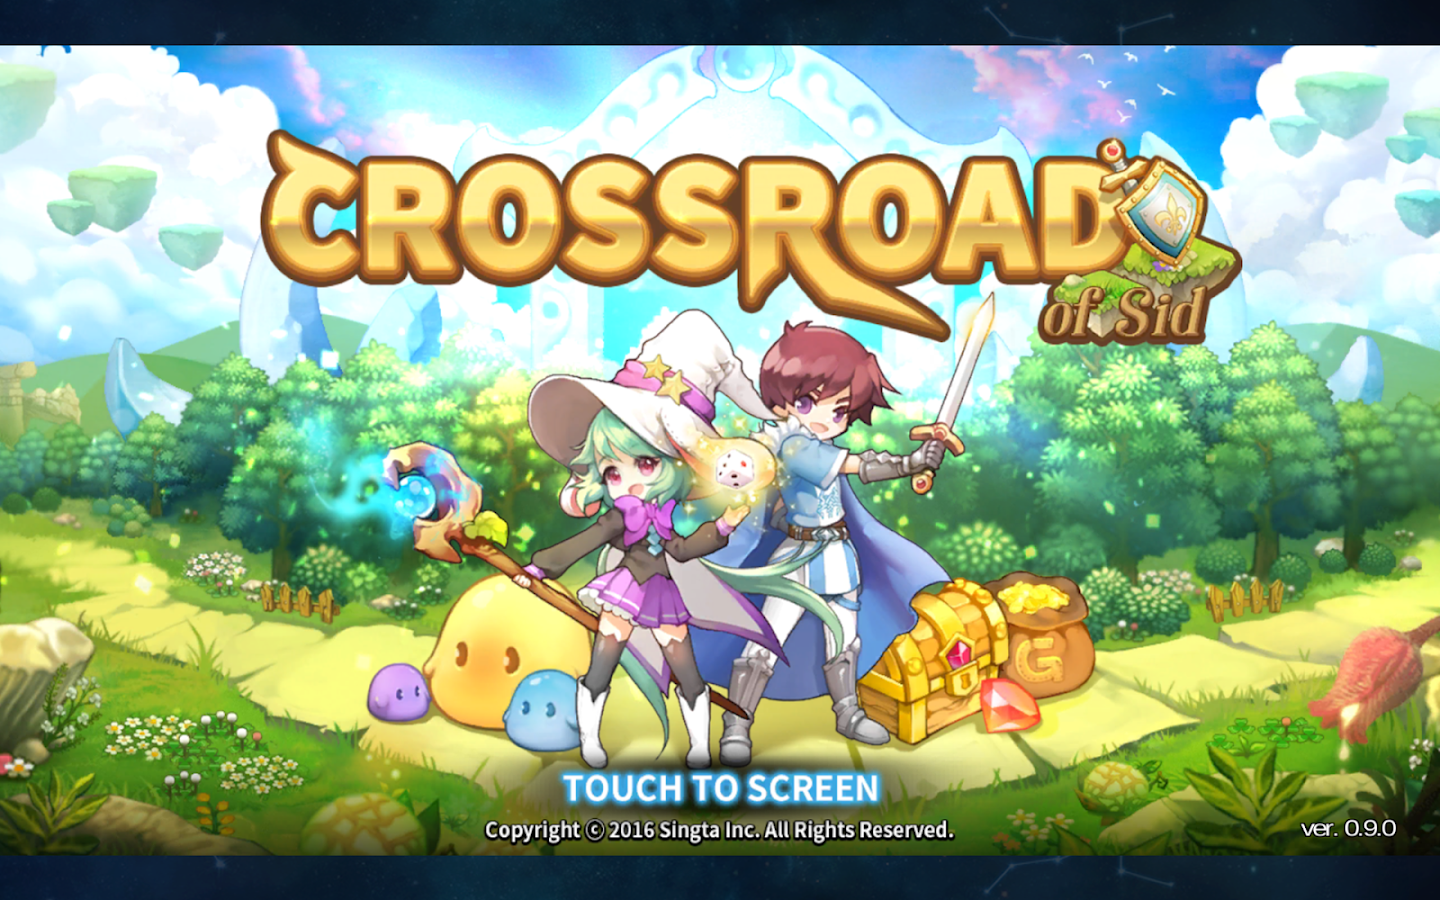 Crossroad of Sid Screenshot 14